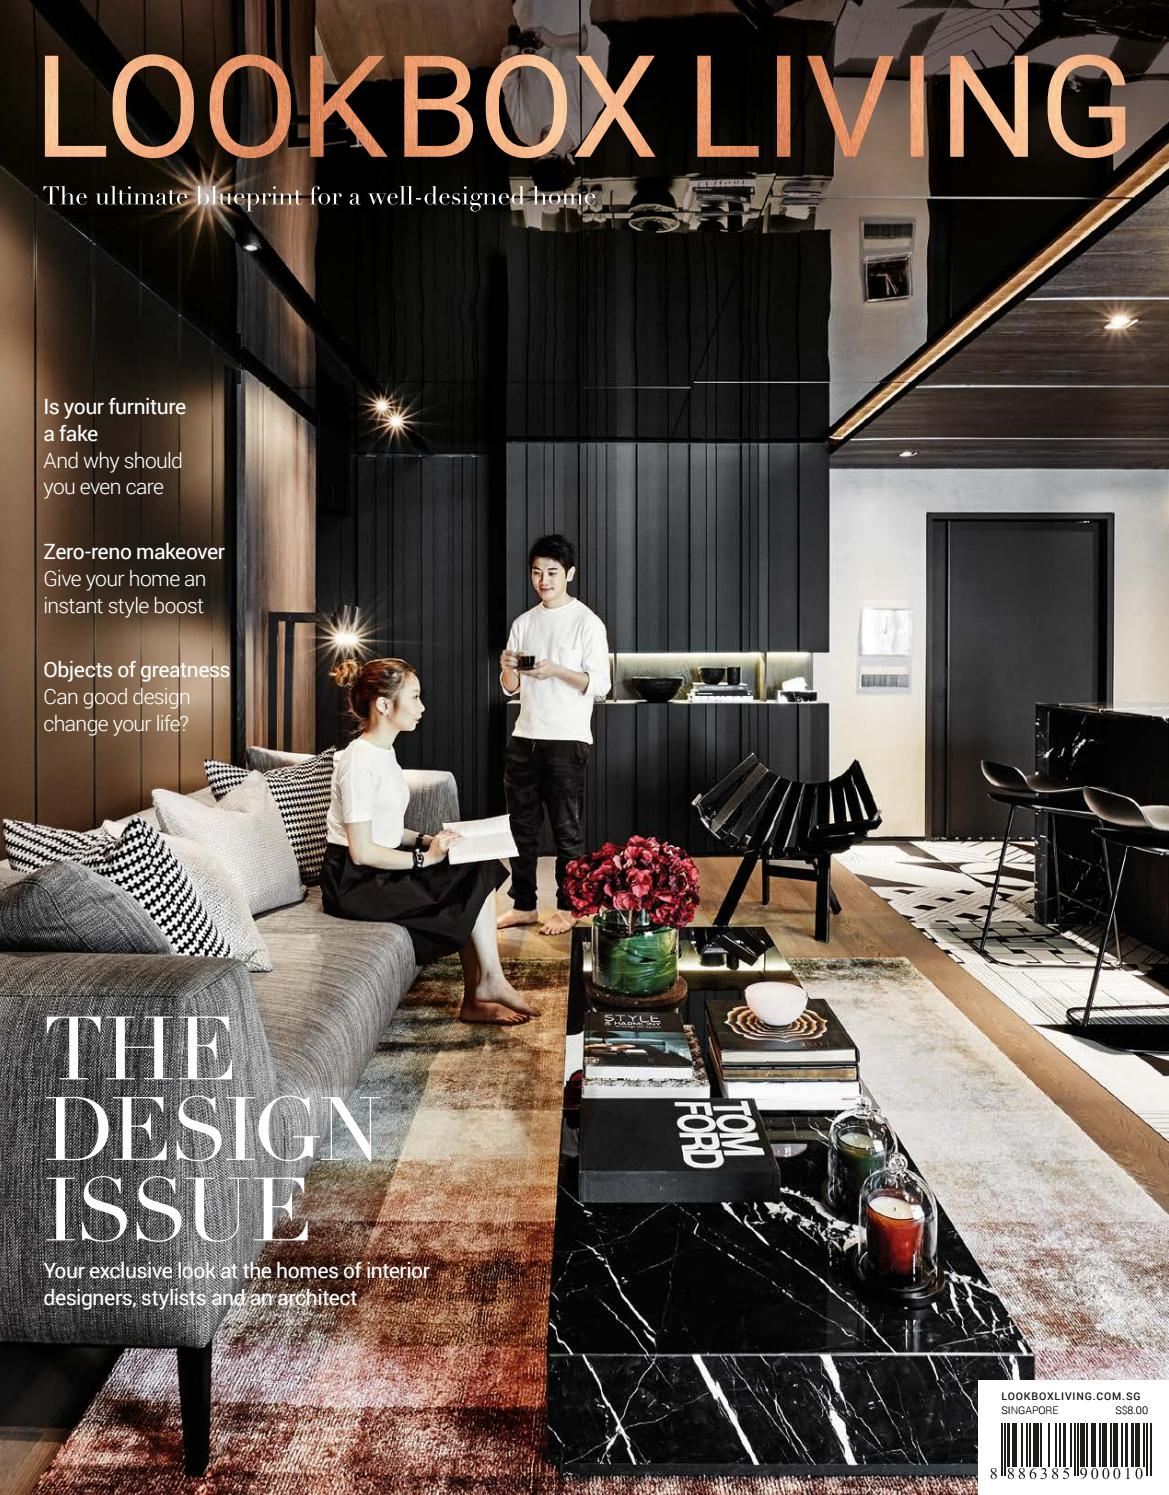 Lookbox living 50 by indesign media asia pacific issuu